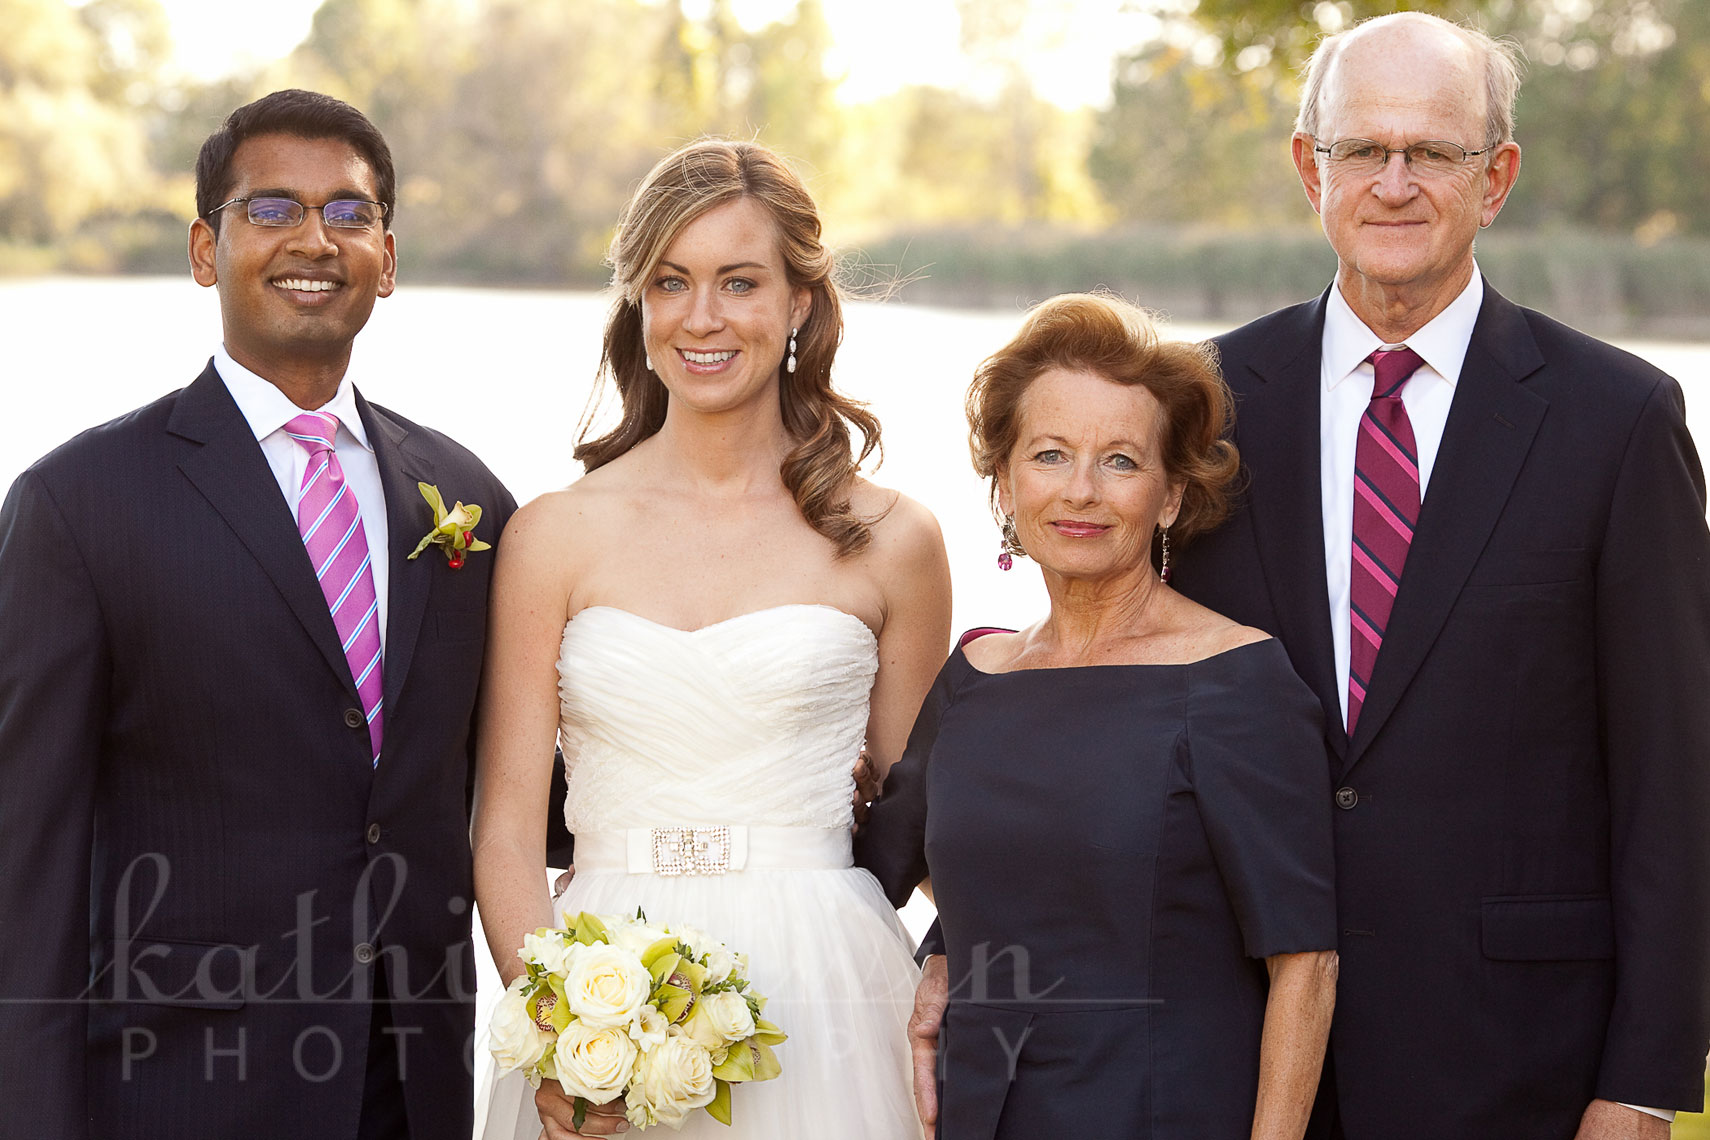 Kathi_Littwin_Photography_Mashomack_wedding_3025